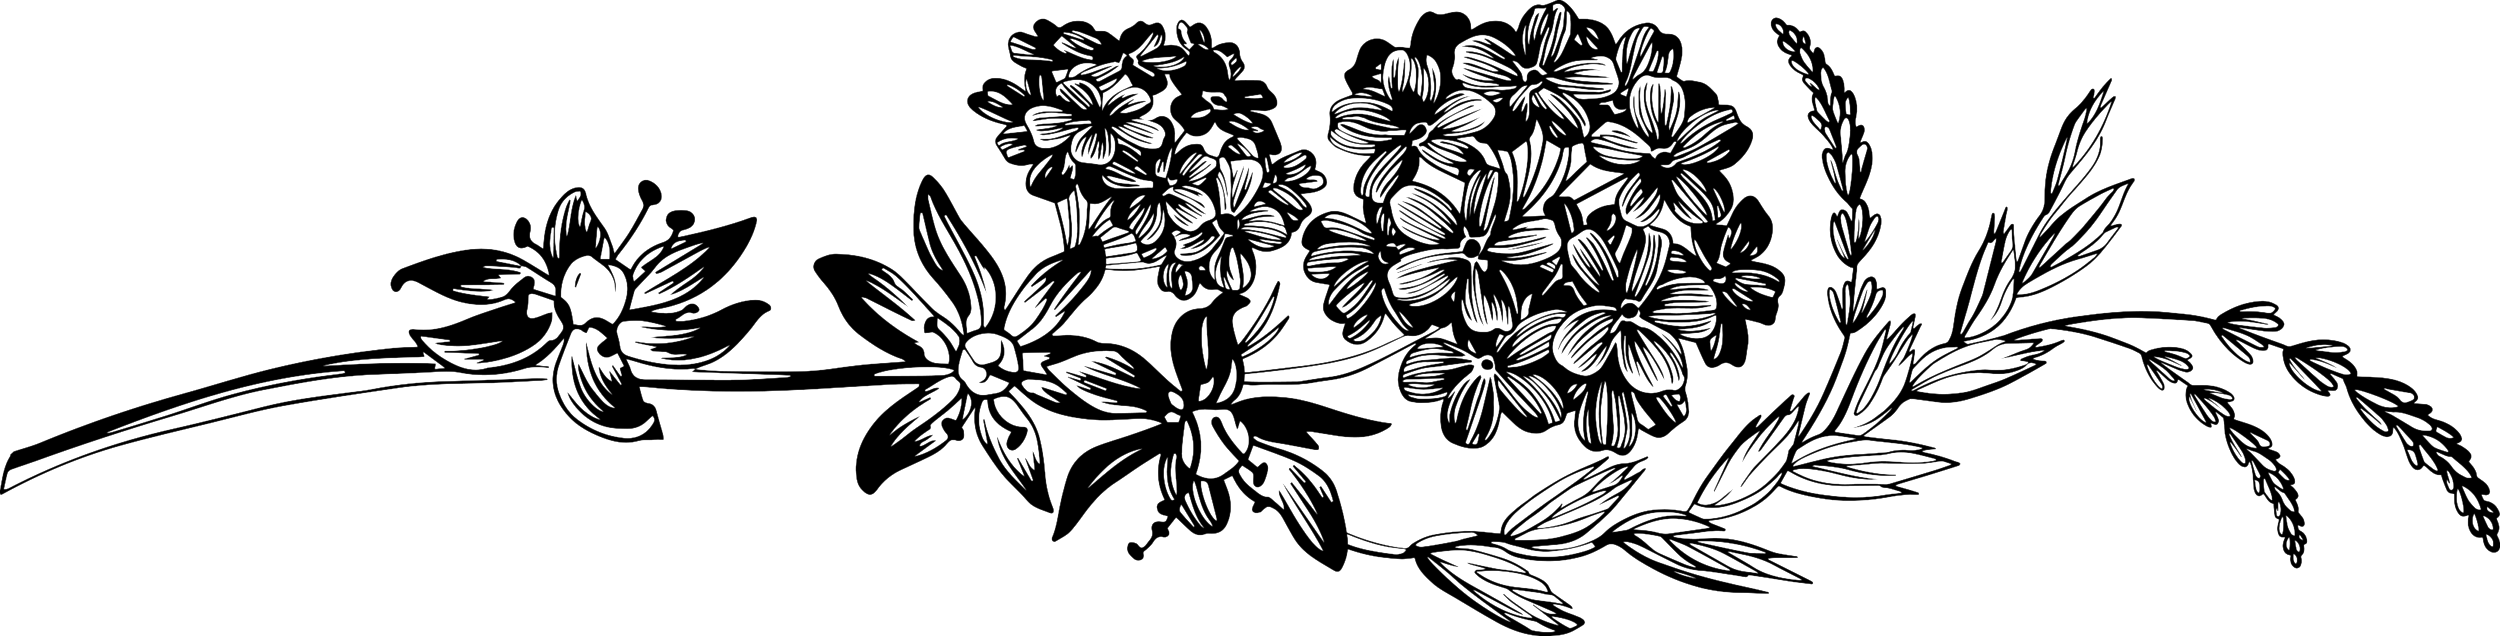 Flower-1 2.png